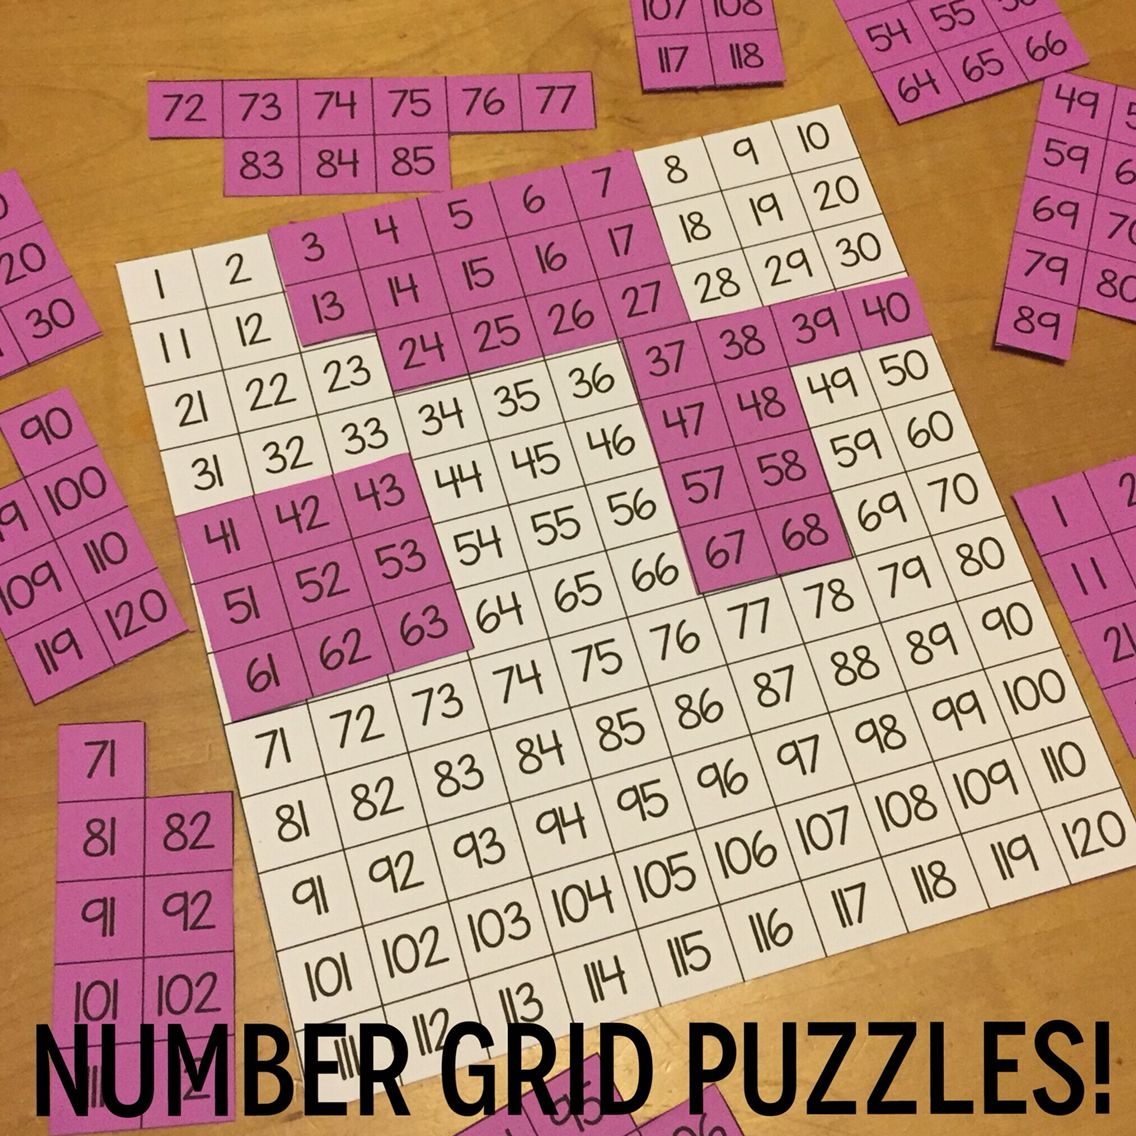 Cut Apart This Free Template To Make Number Grid Puzzles